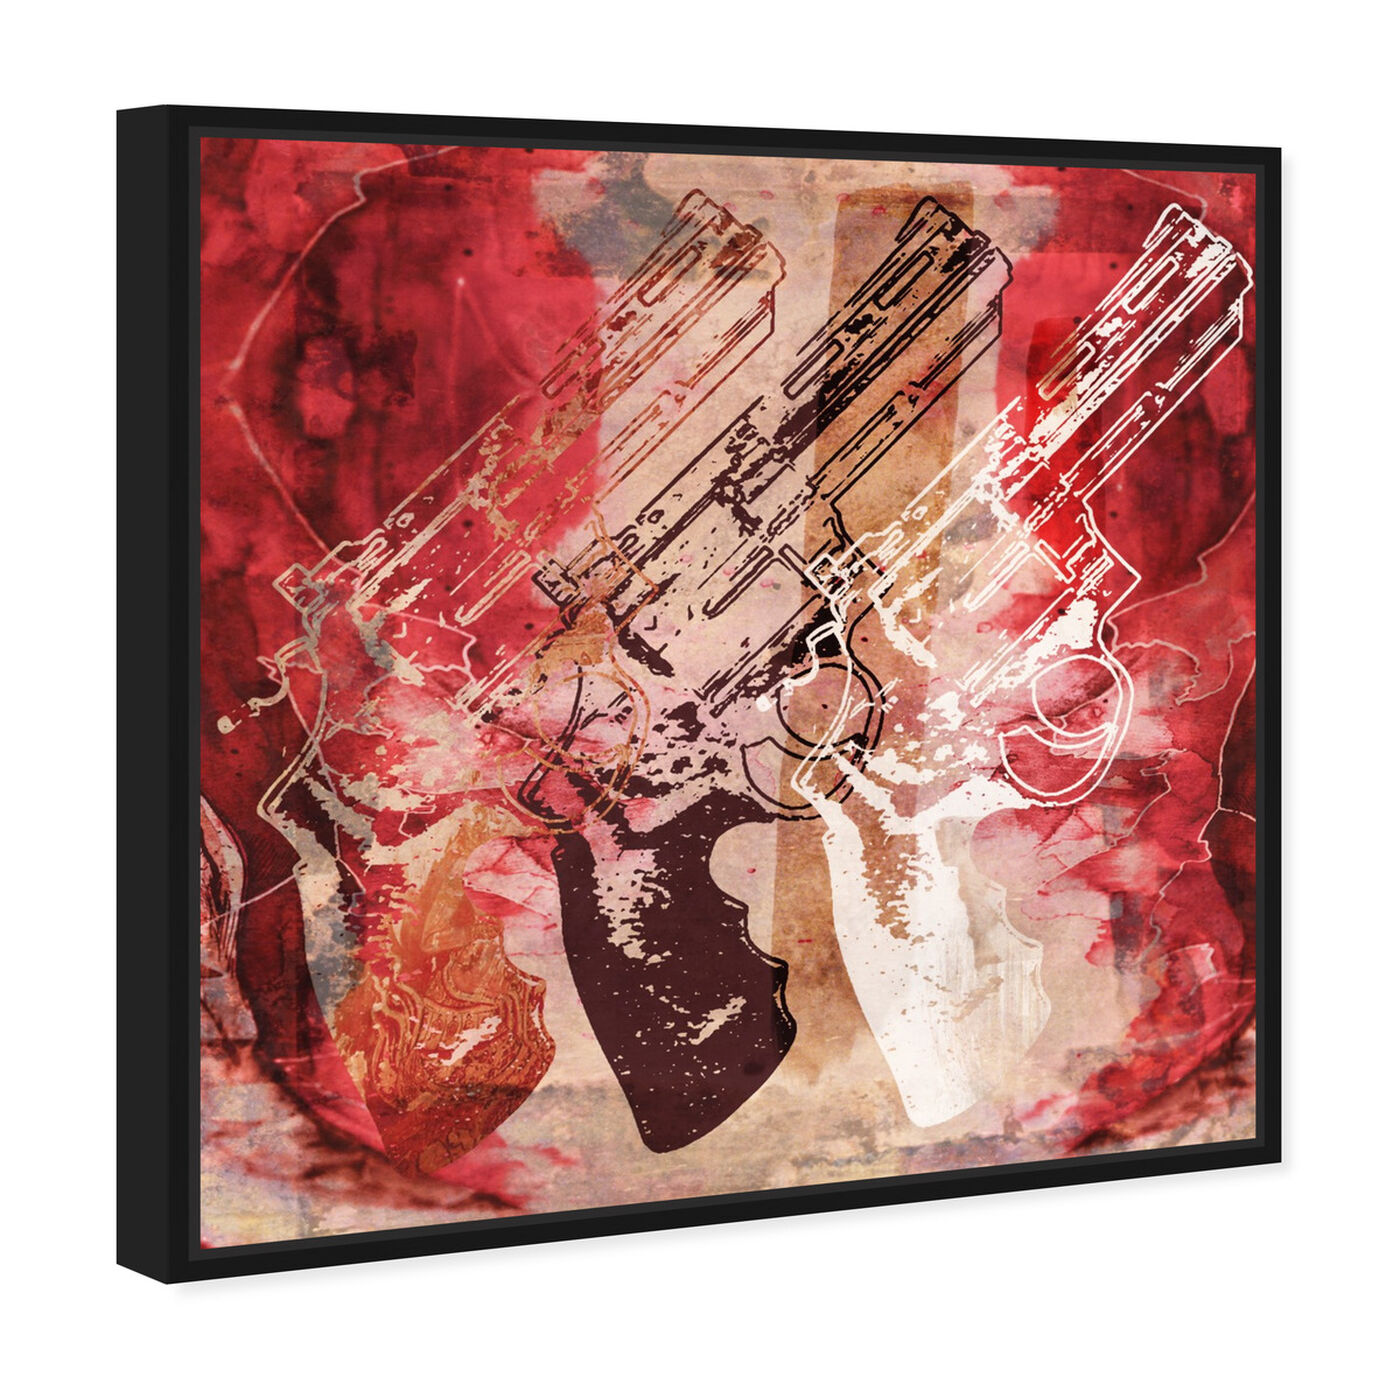 Angled view of Guns and Roses featuring entertainment and hobbies and machine guns art.